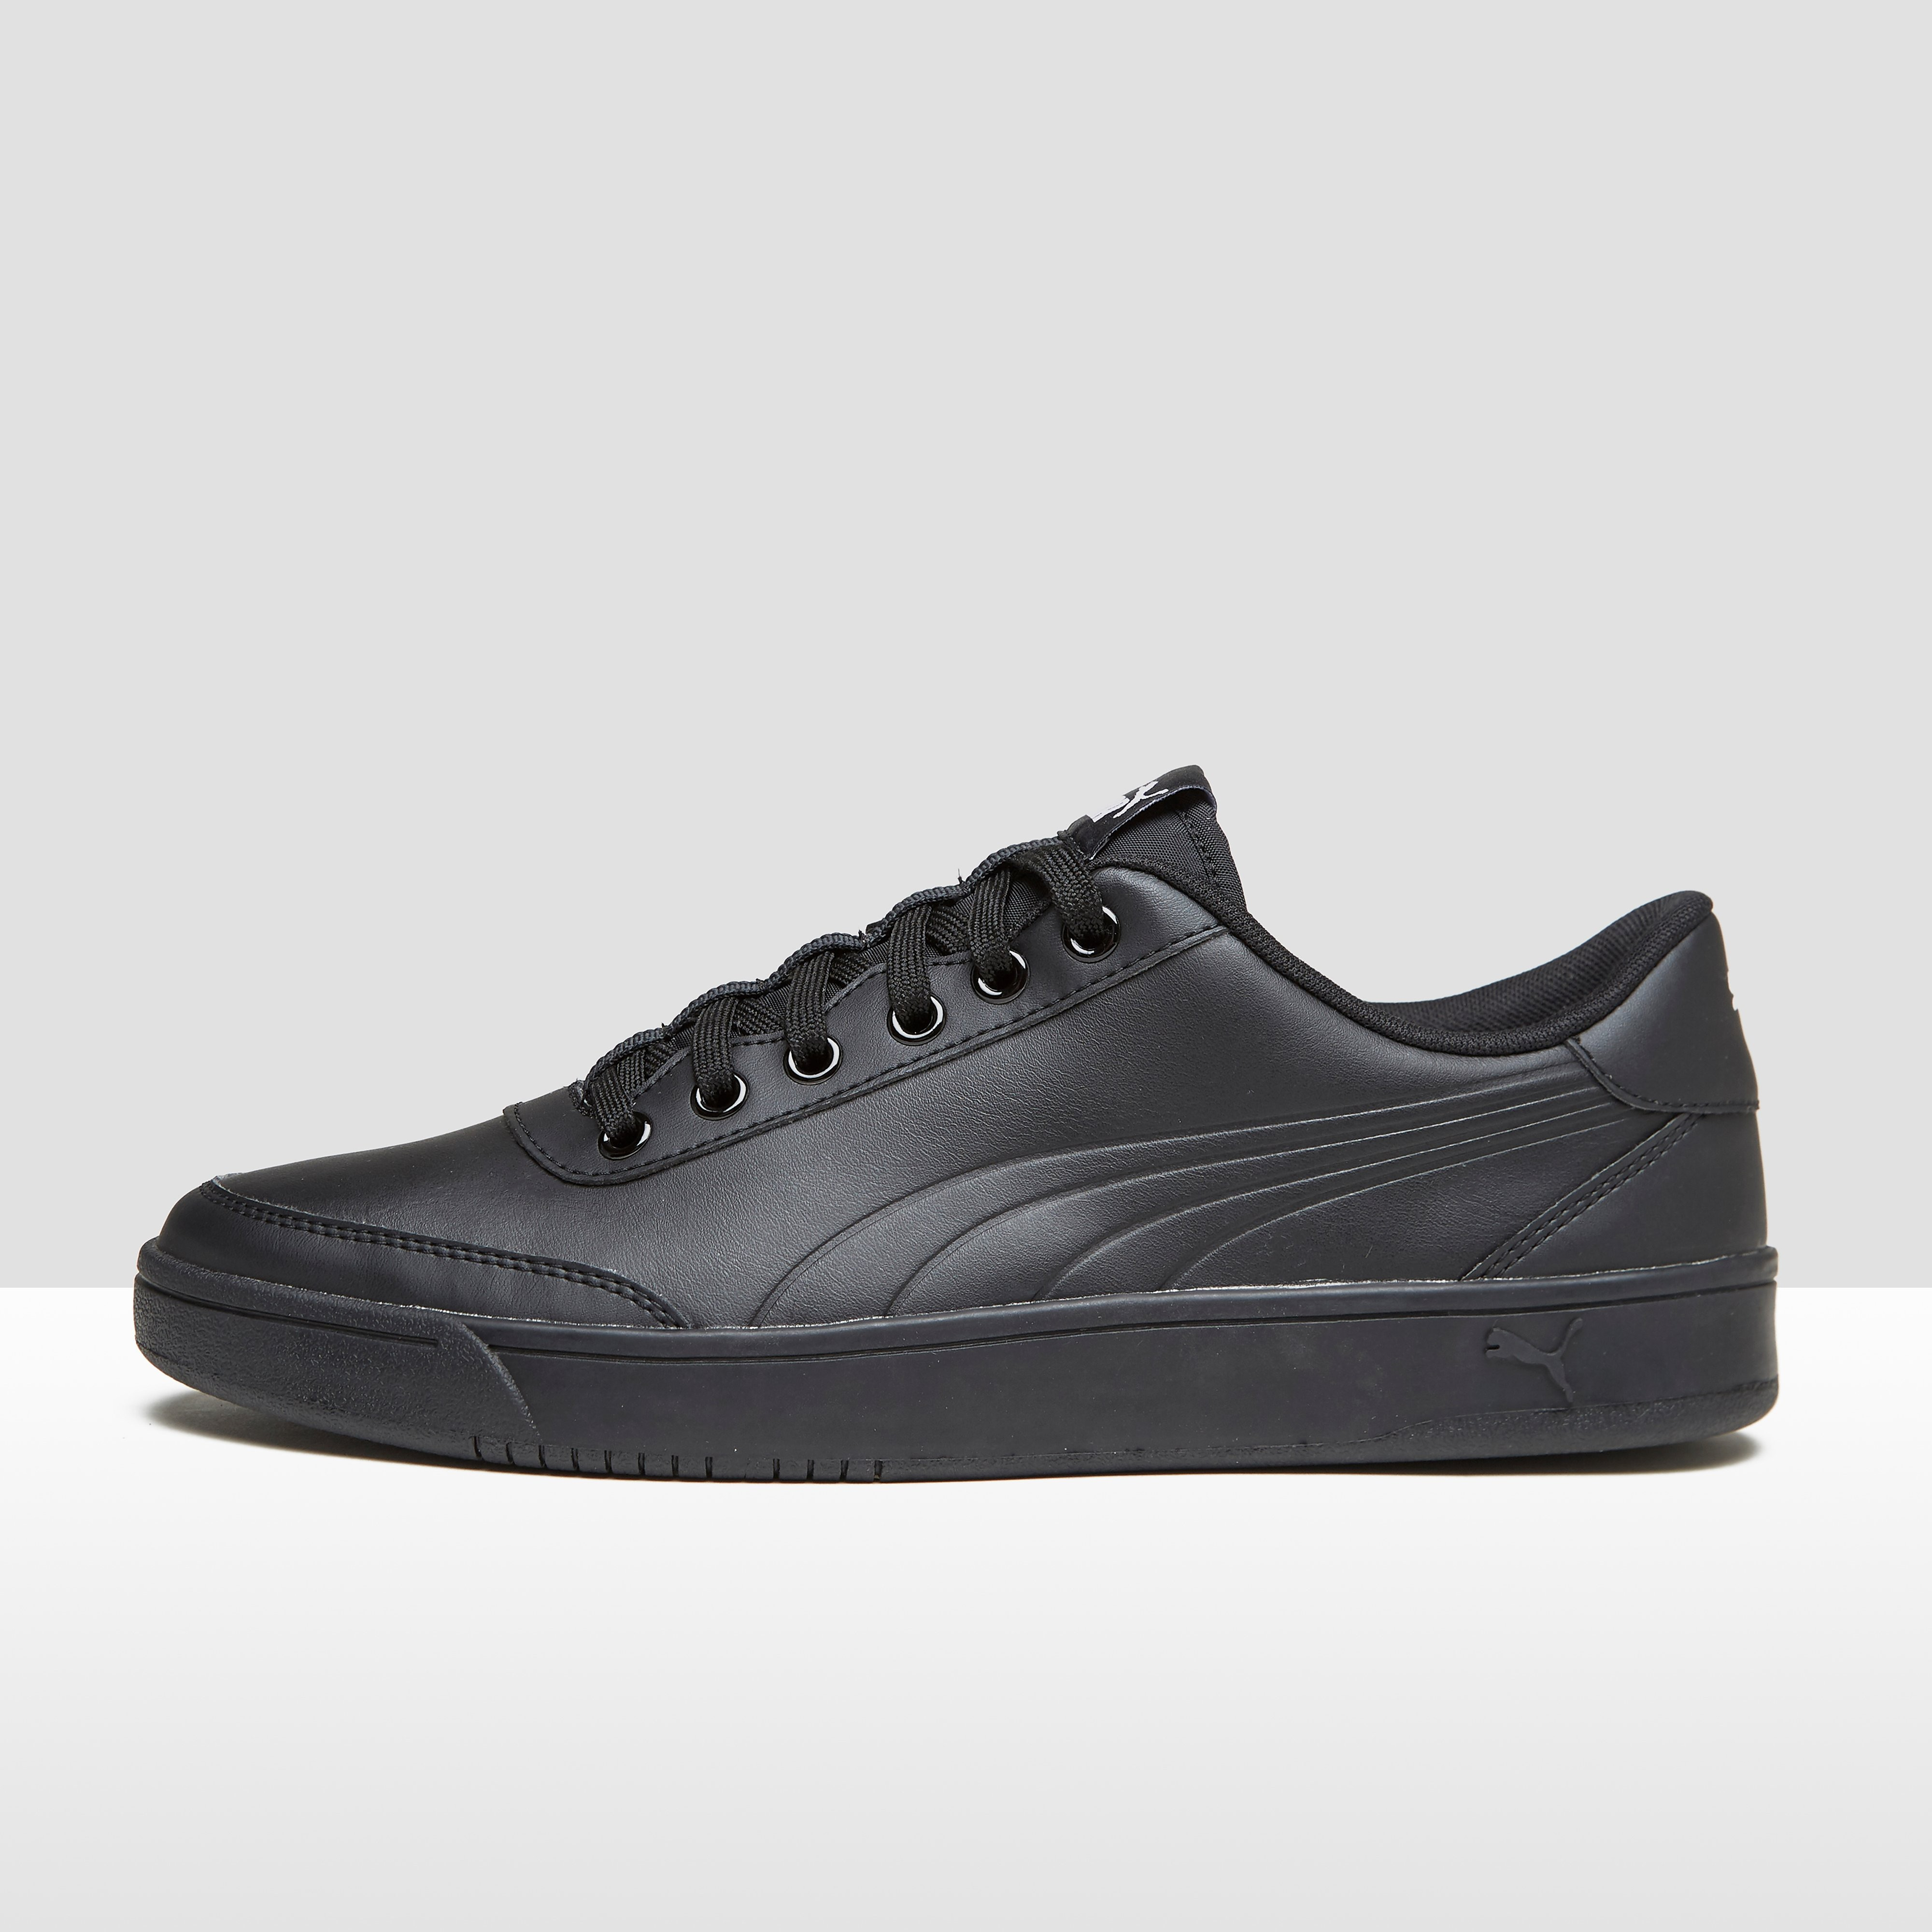 PUMA COURT BREAKER SNEAKERS ZWART HEREN